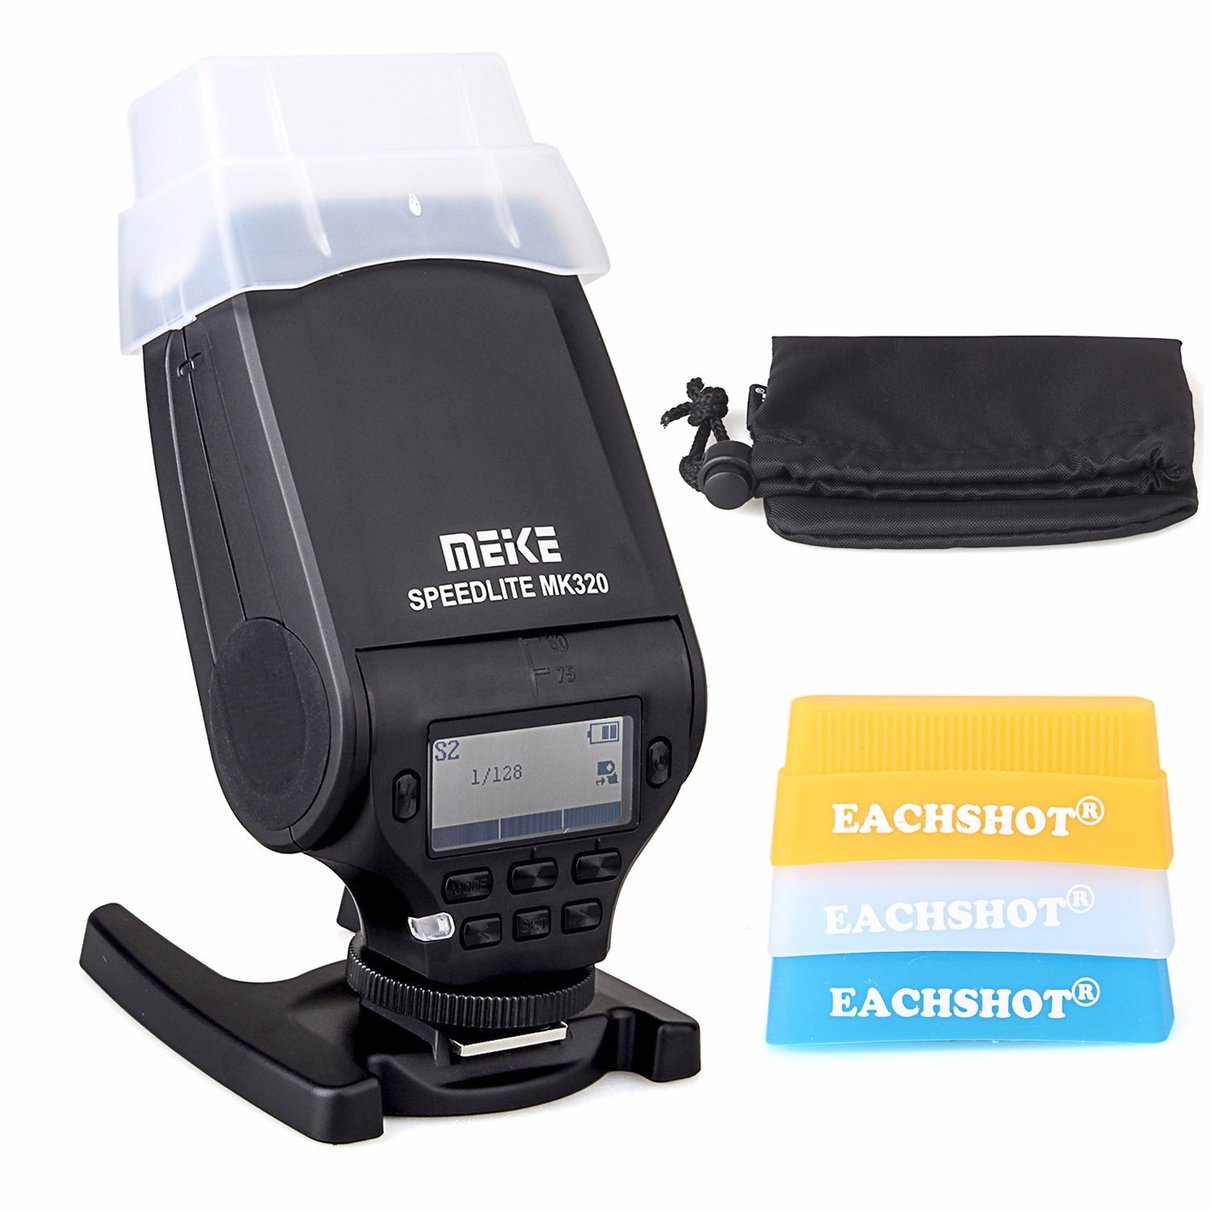 MEIKE MK-320 for FujiFilm TTL Speedlite for FujiFilm Hot Shoe Camera X-T1 X-M1 X100s X-a1 X-e2 X100t as EF-20 meike mk320 mk 320 gn32 ttl flash speedlite for fujifilm hot shoe x e2 x e1 x pro1 x pro2 x m1 x a3 x a2 x a1 xt1 x100t as ef 20